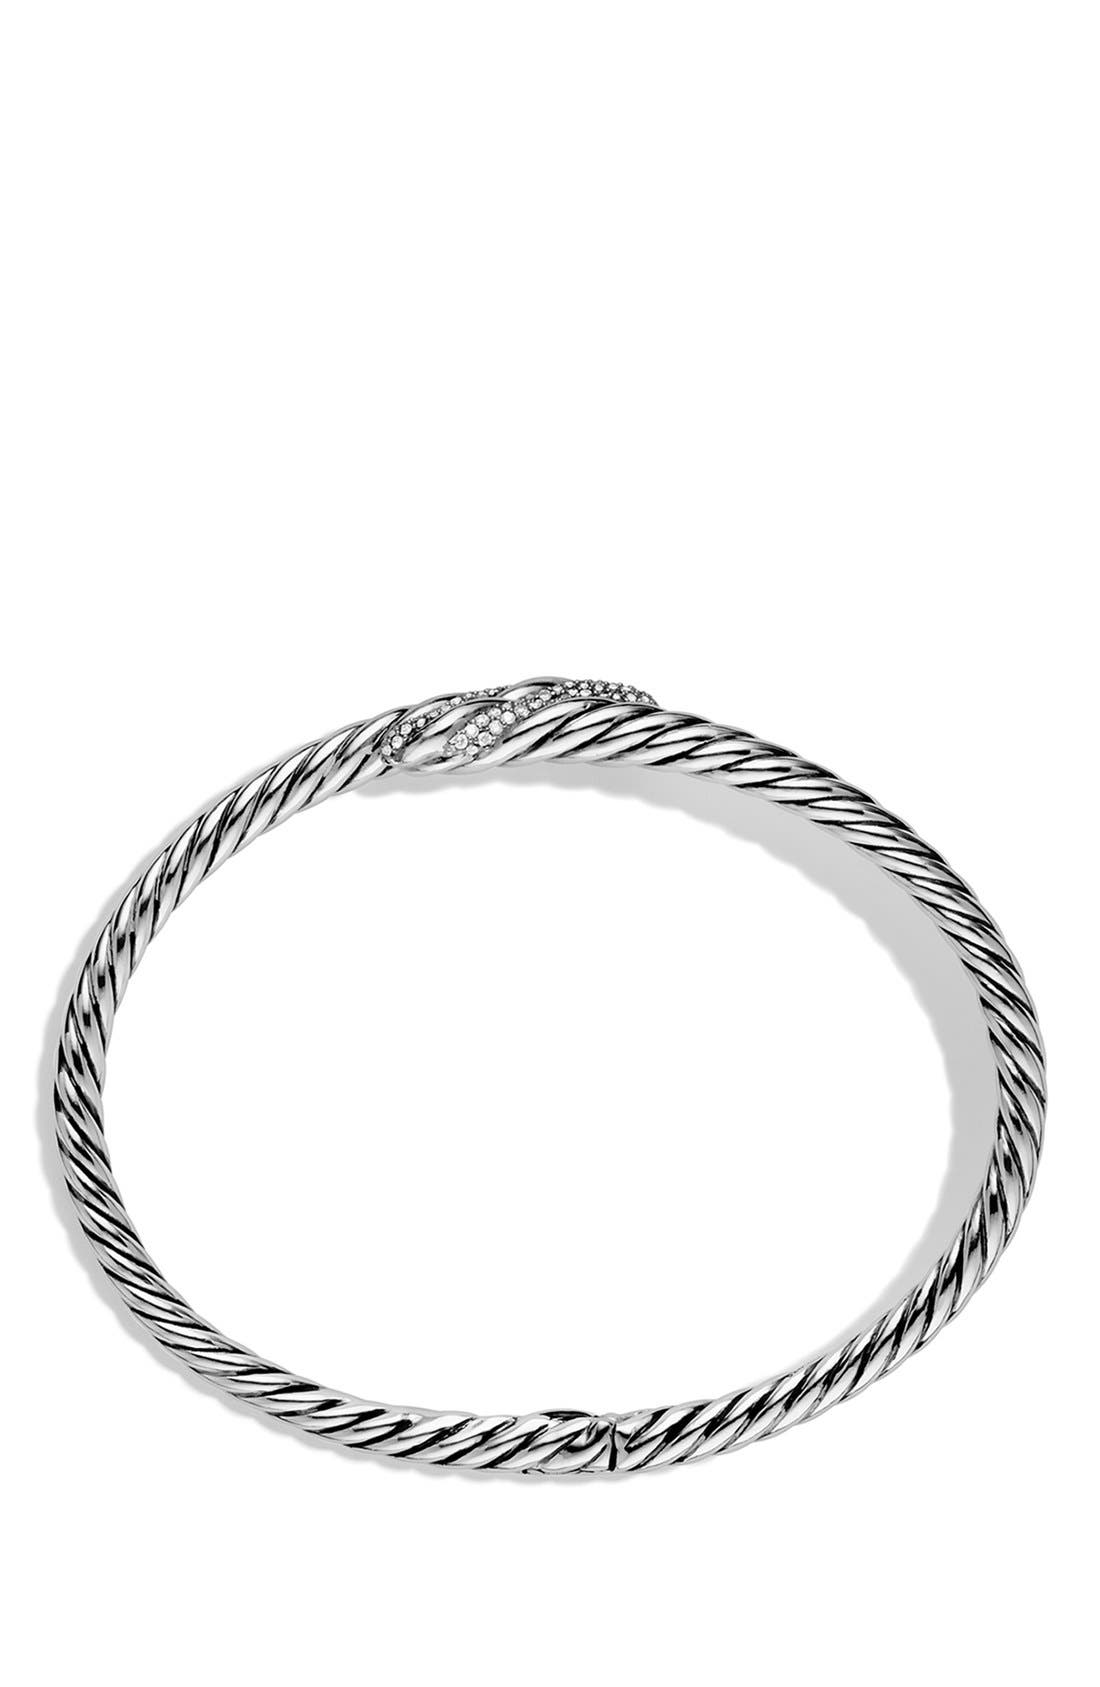 Alternate Image 2  - David Yurman 'Willow' Single Row Bracelet with Diamonds